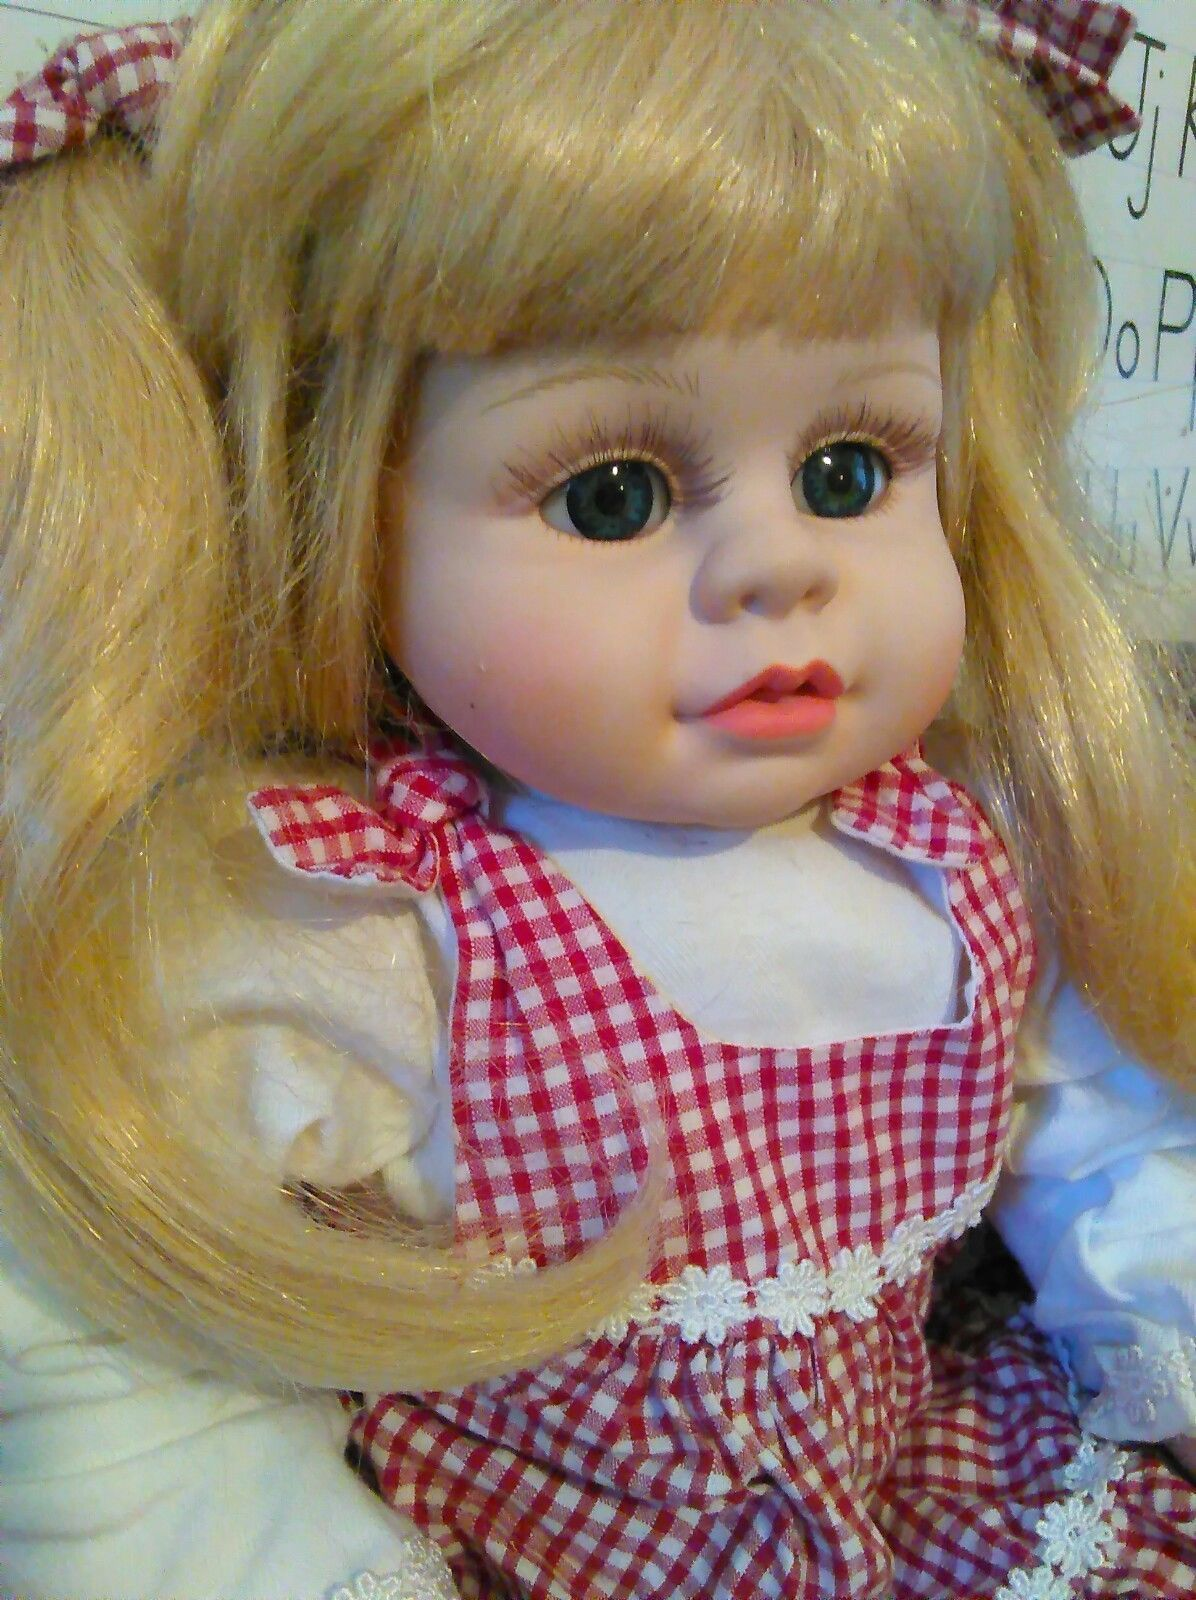 Doll Baby Blond Girl Toy  in LifeLike Vinyl Sweet and Innocent